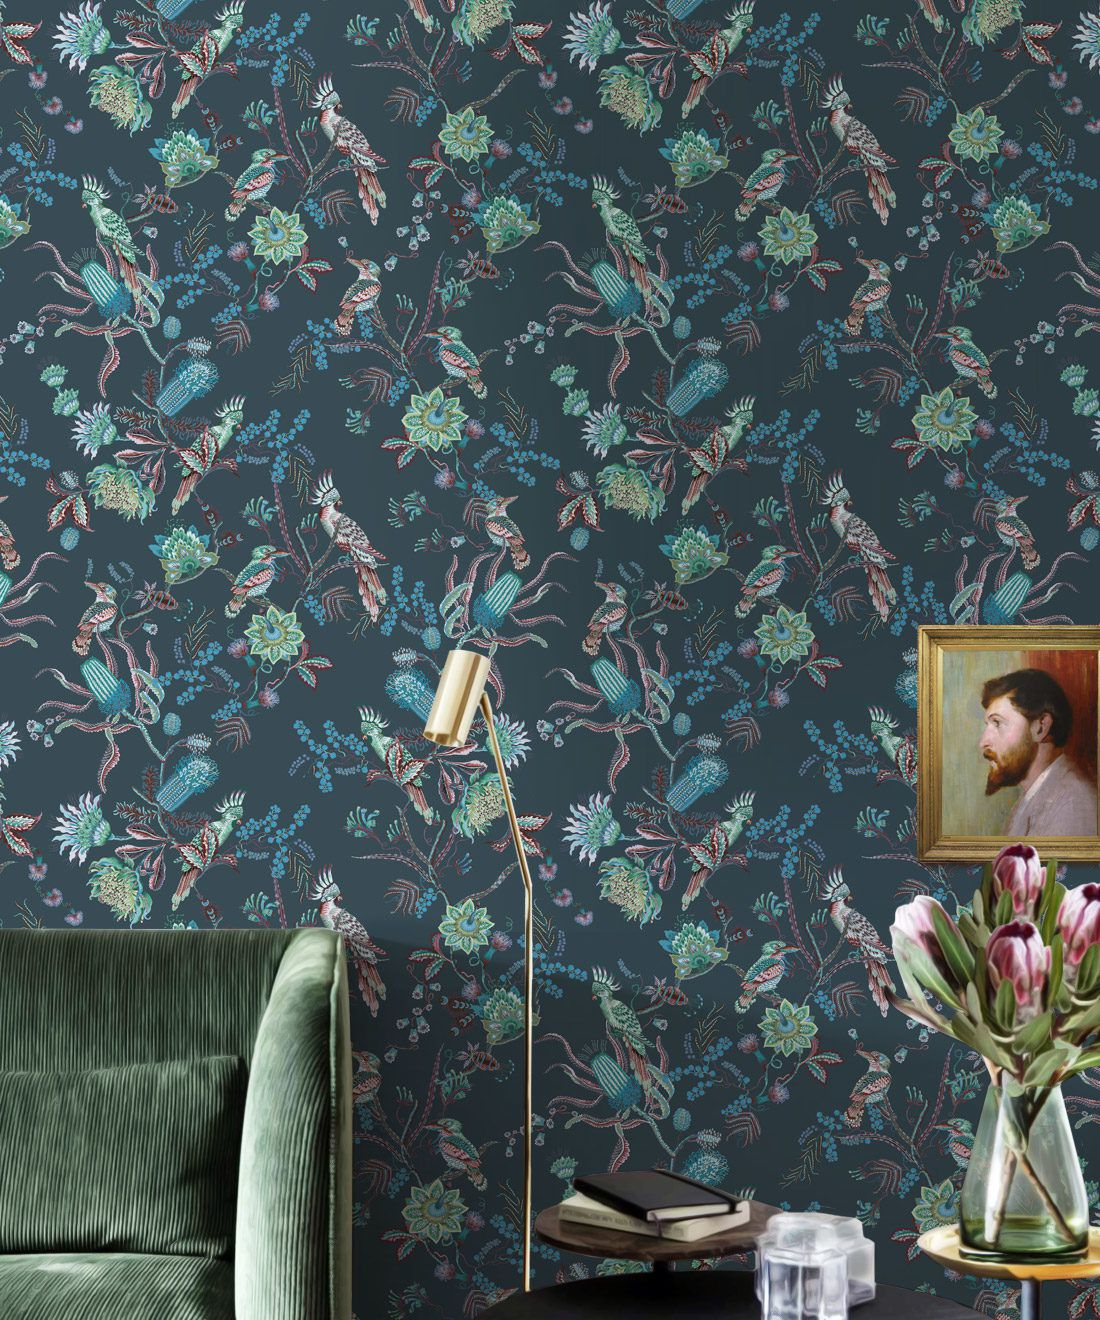 Matilda Wallpaper • Cockatoo, kookaburra • Australian Wallpaper • Milton & King USA • Deep Blue Insitu